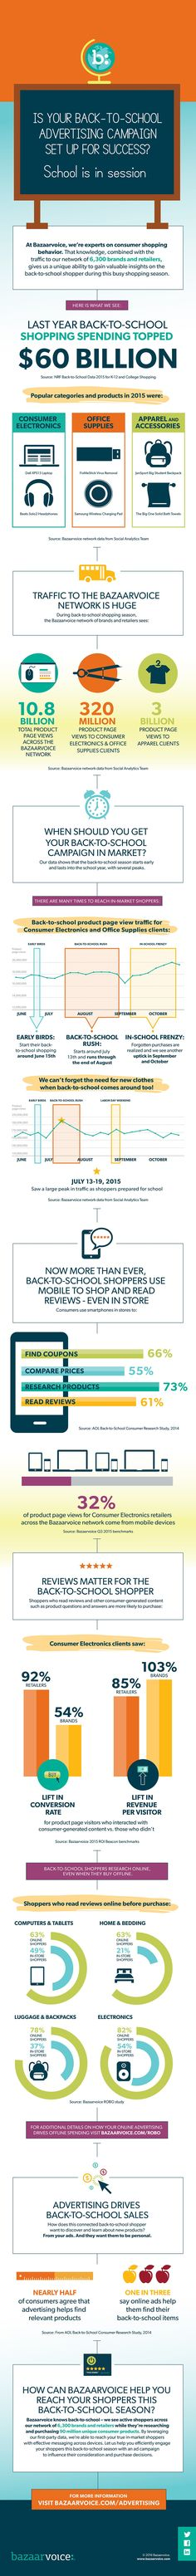 Infographic: Your Guide to the Back-to-School Shopper